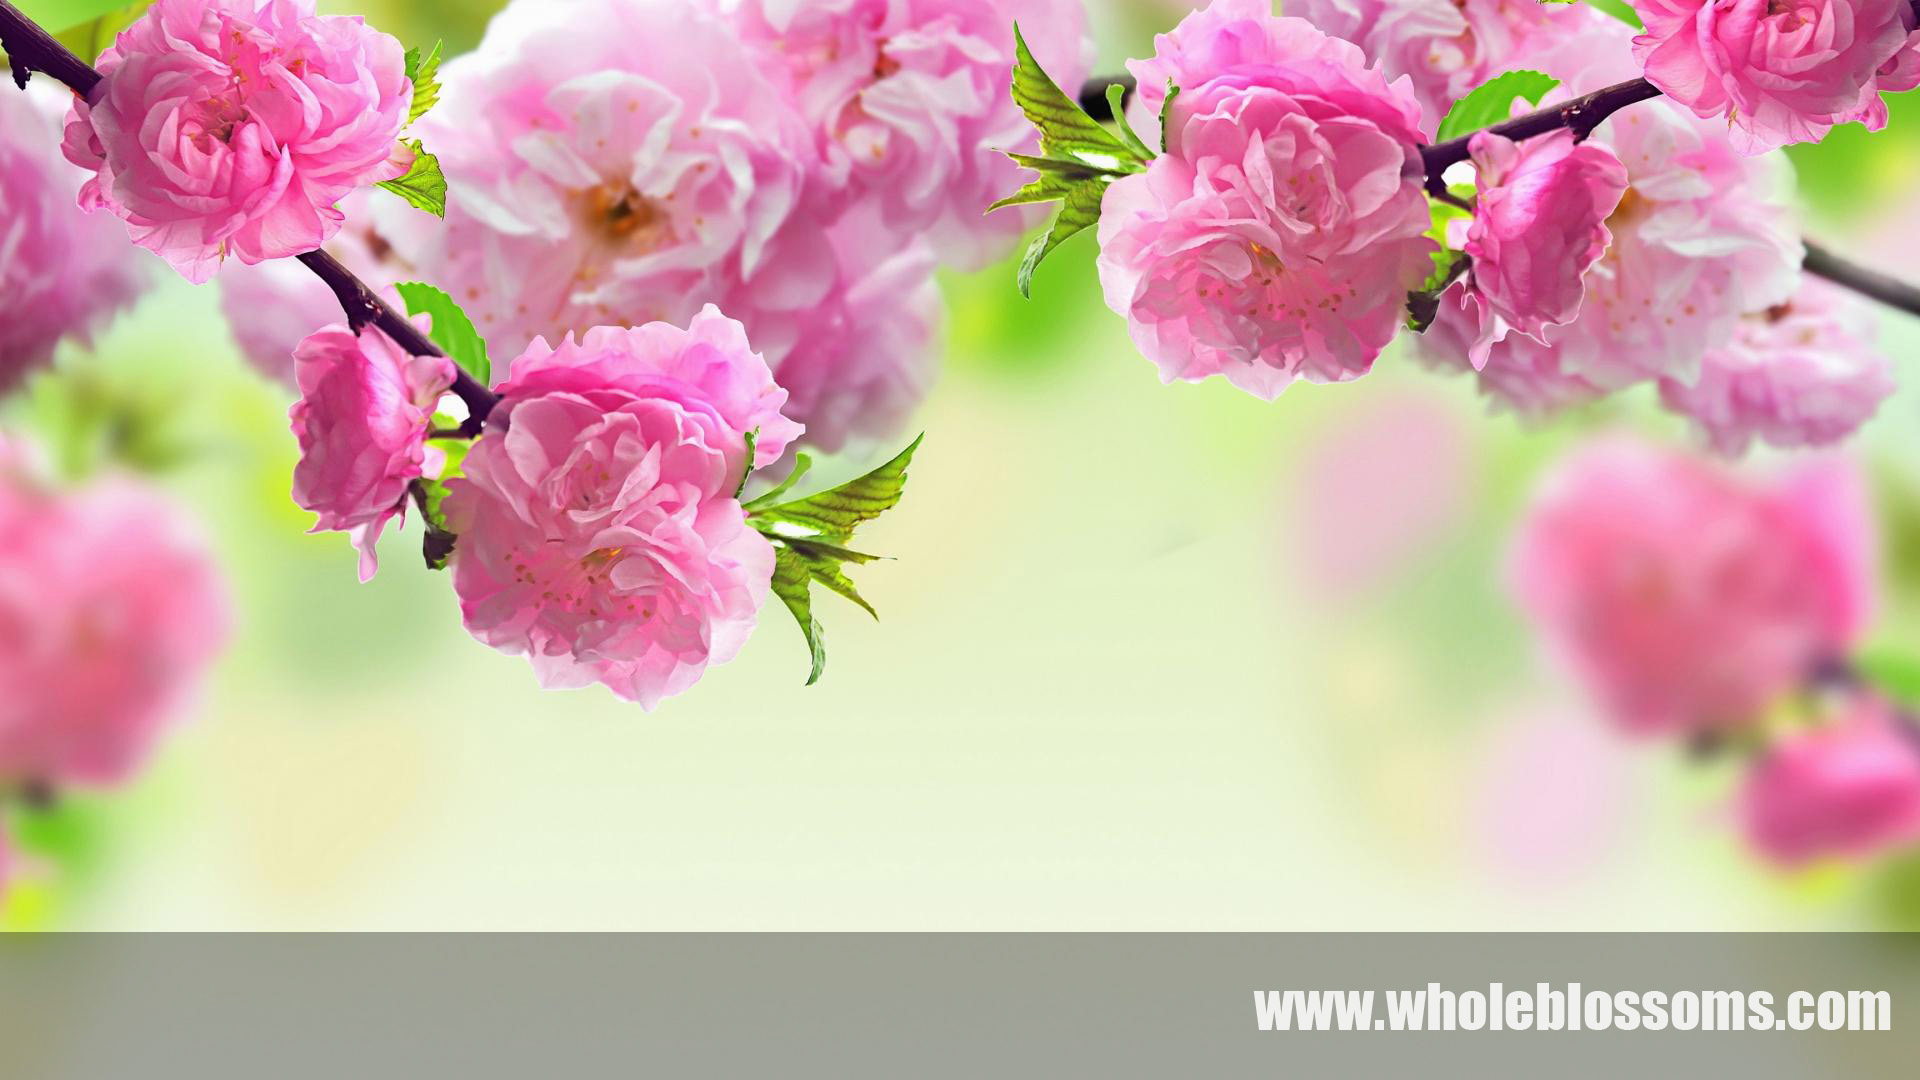 The three reasons to buy wholesale flowers online with Whole Blossoms